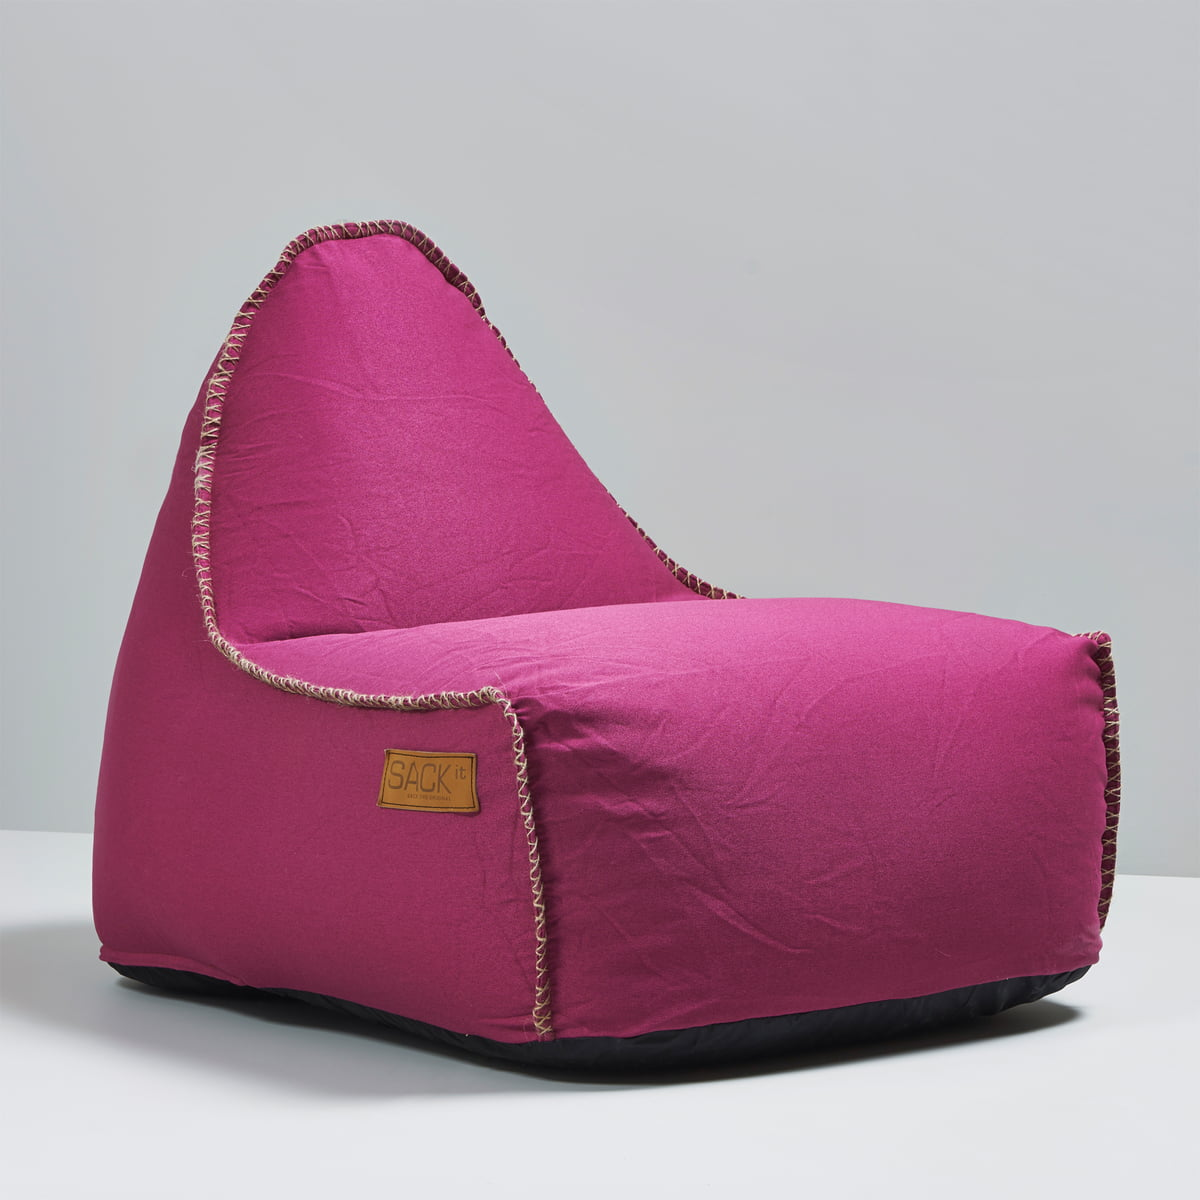 bag chair bean bags lelbys product australia pink in kids raindrops